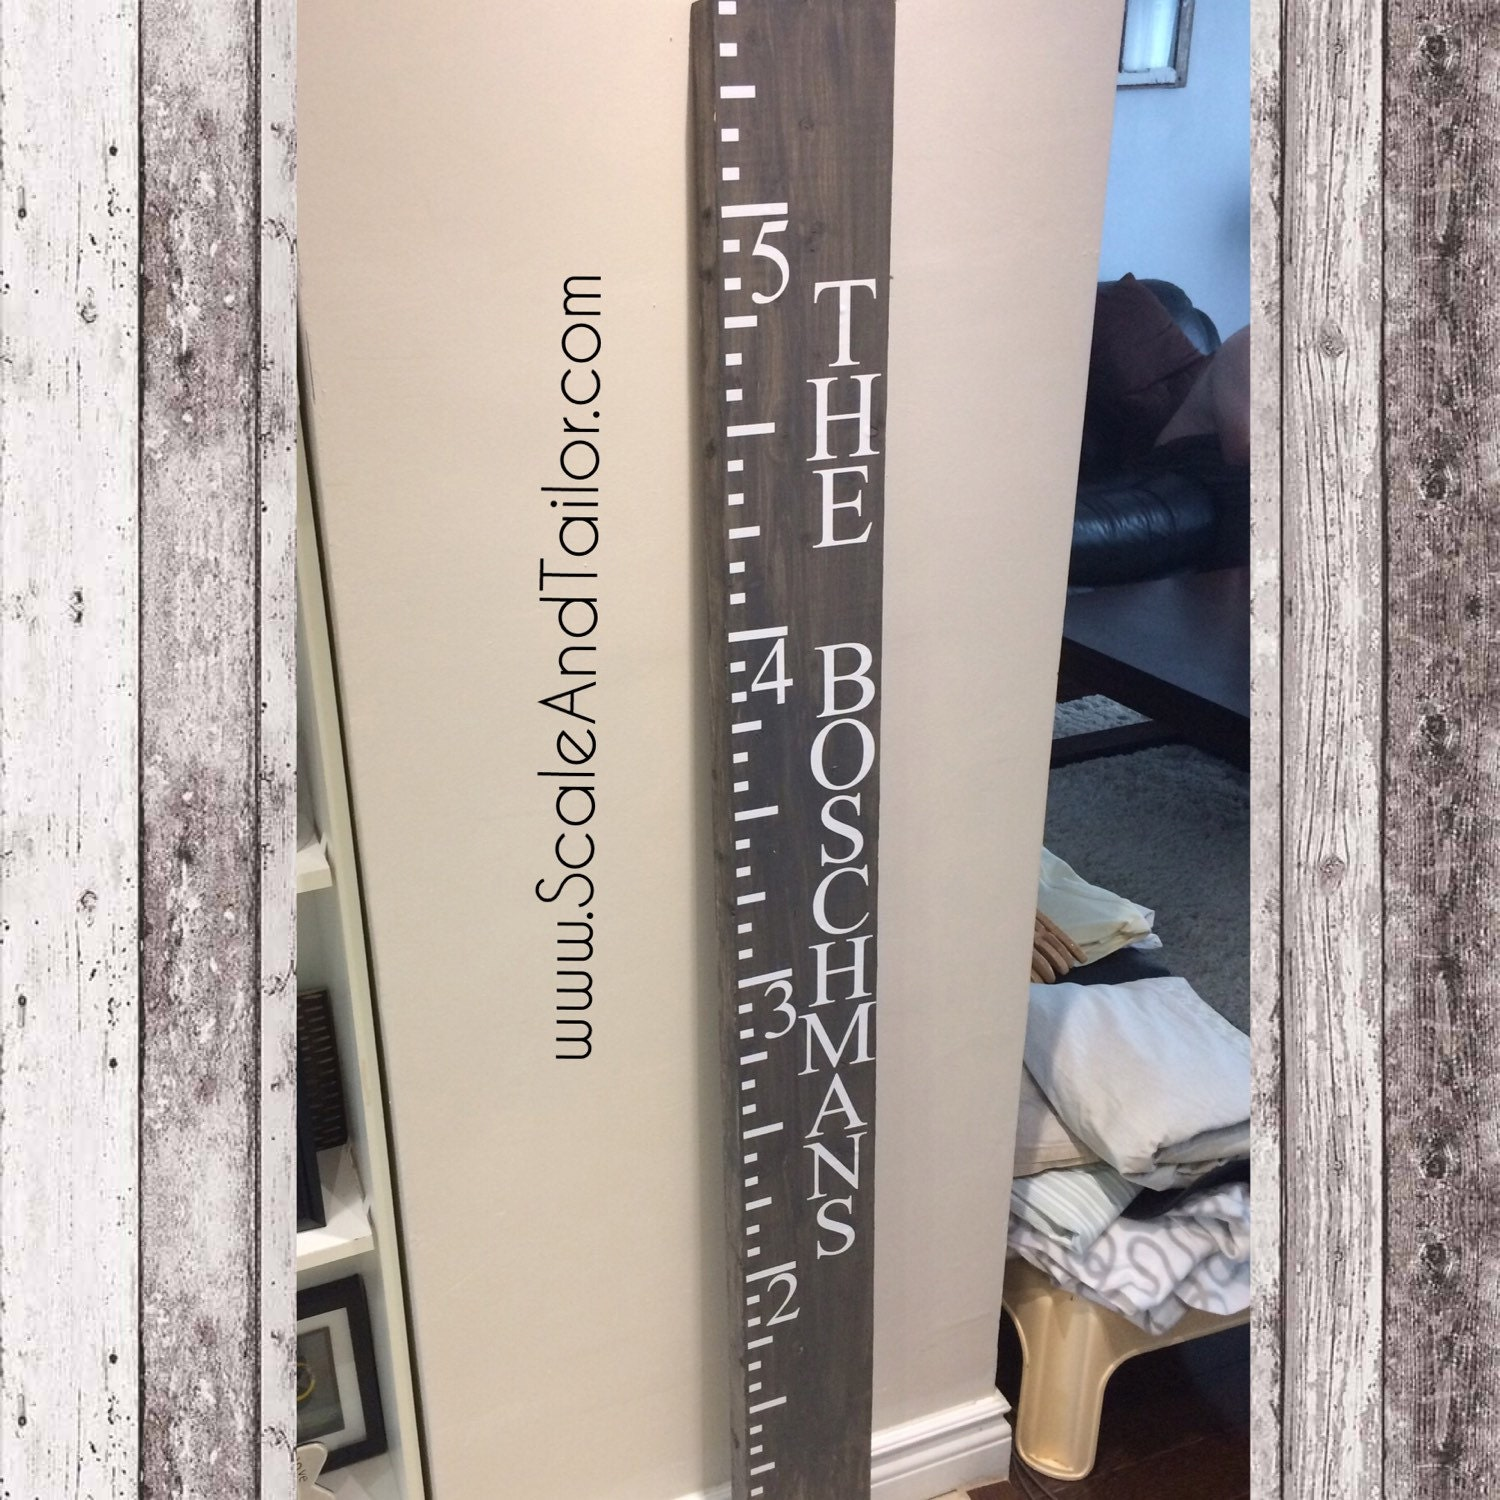 Growth ruler chart growth ruler family growth ruler chart growth ruler chart growth ruler family growth ruler chart customize your own growth ruler chart nvjuhfo Gallery